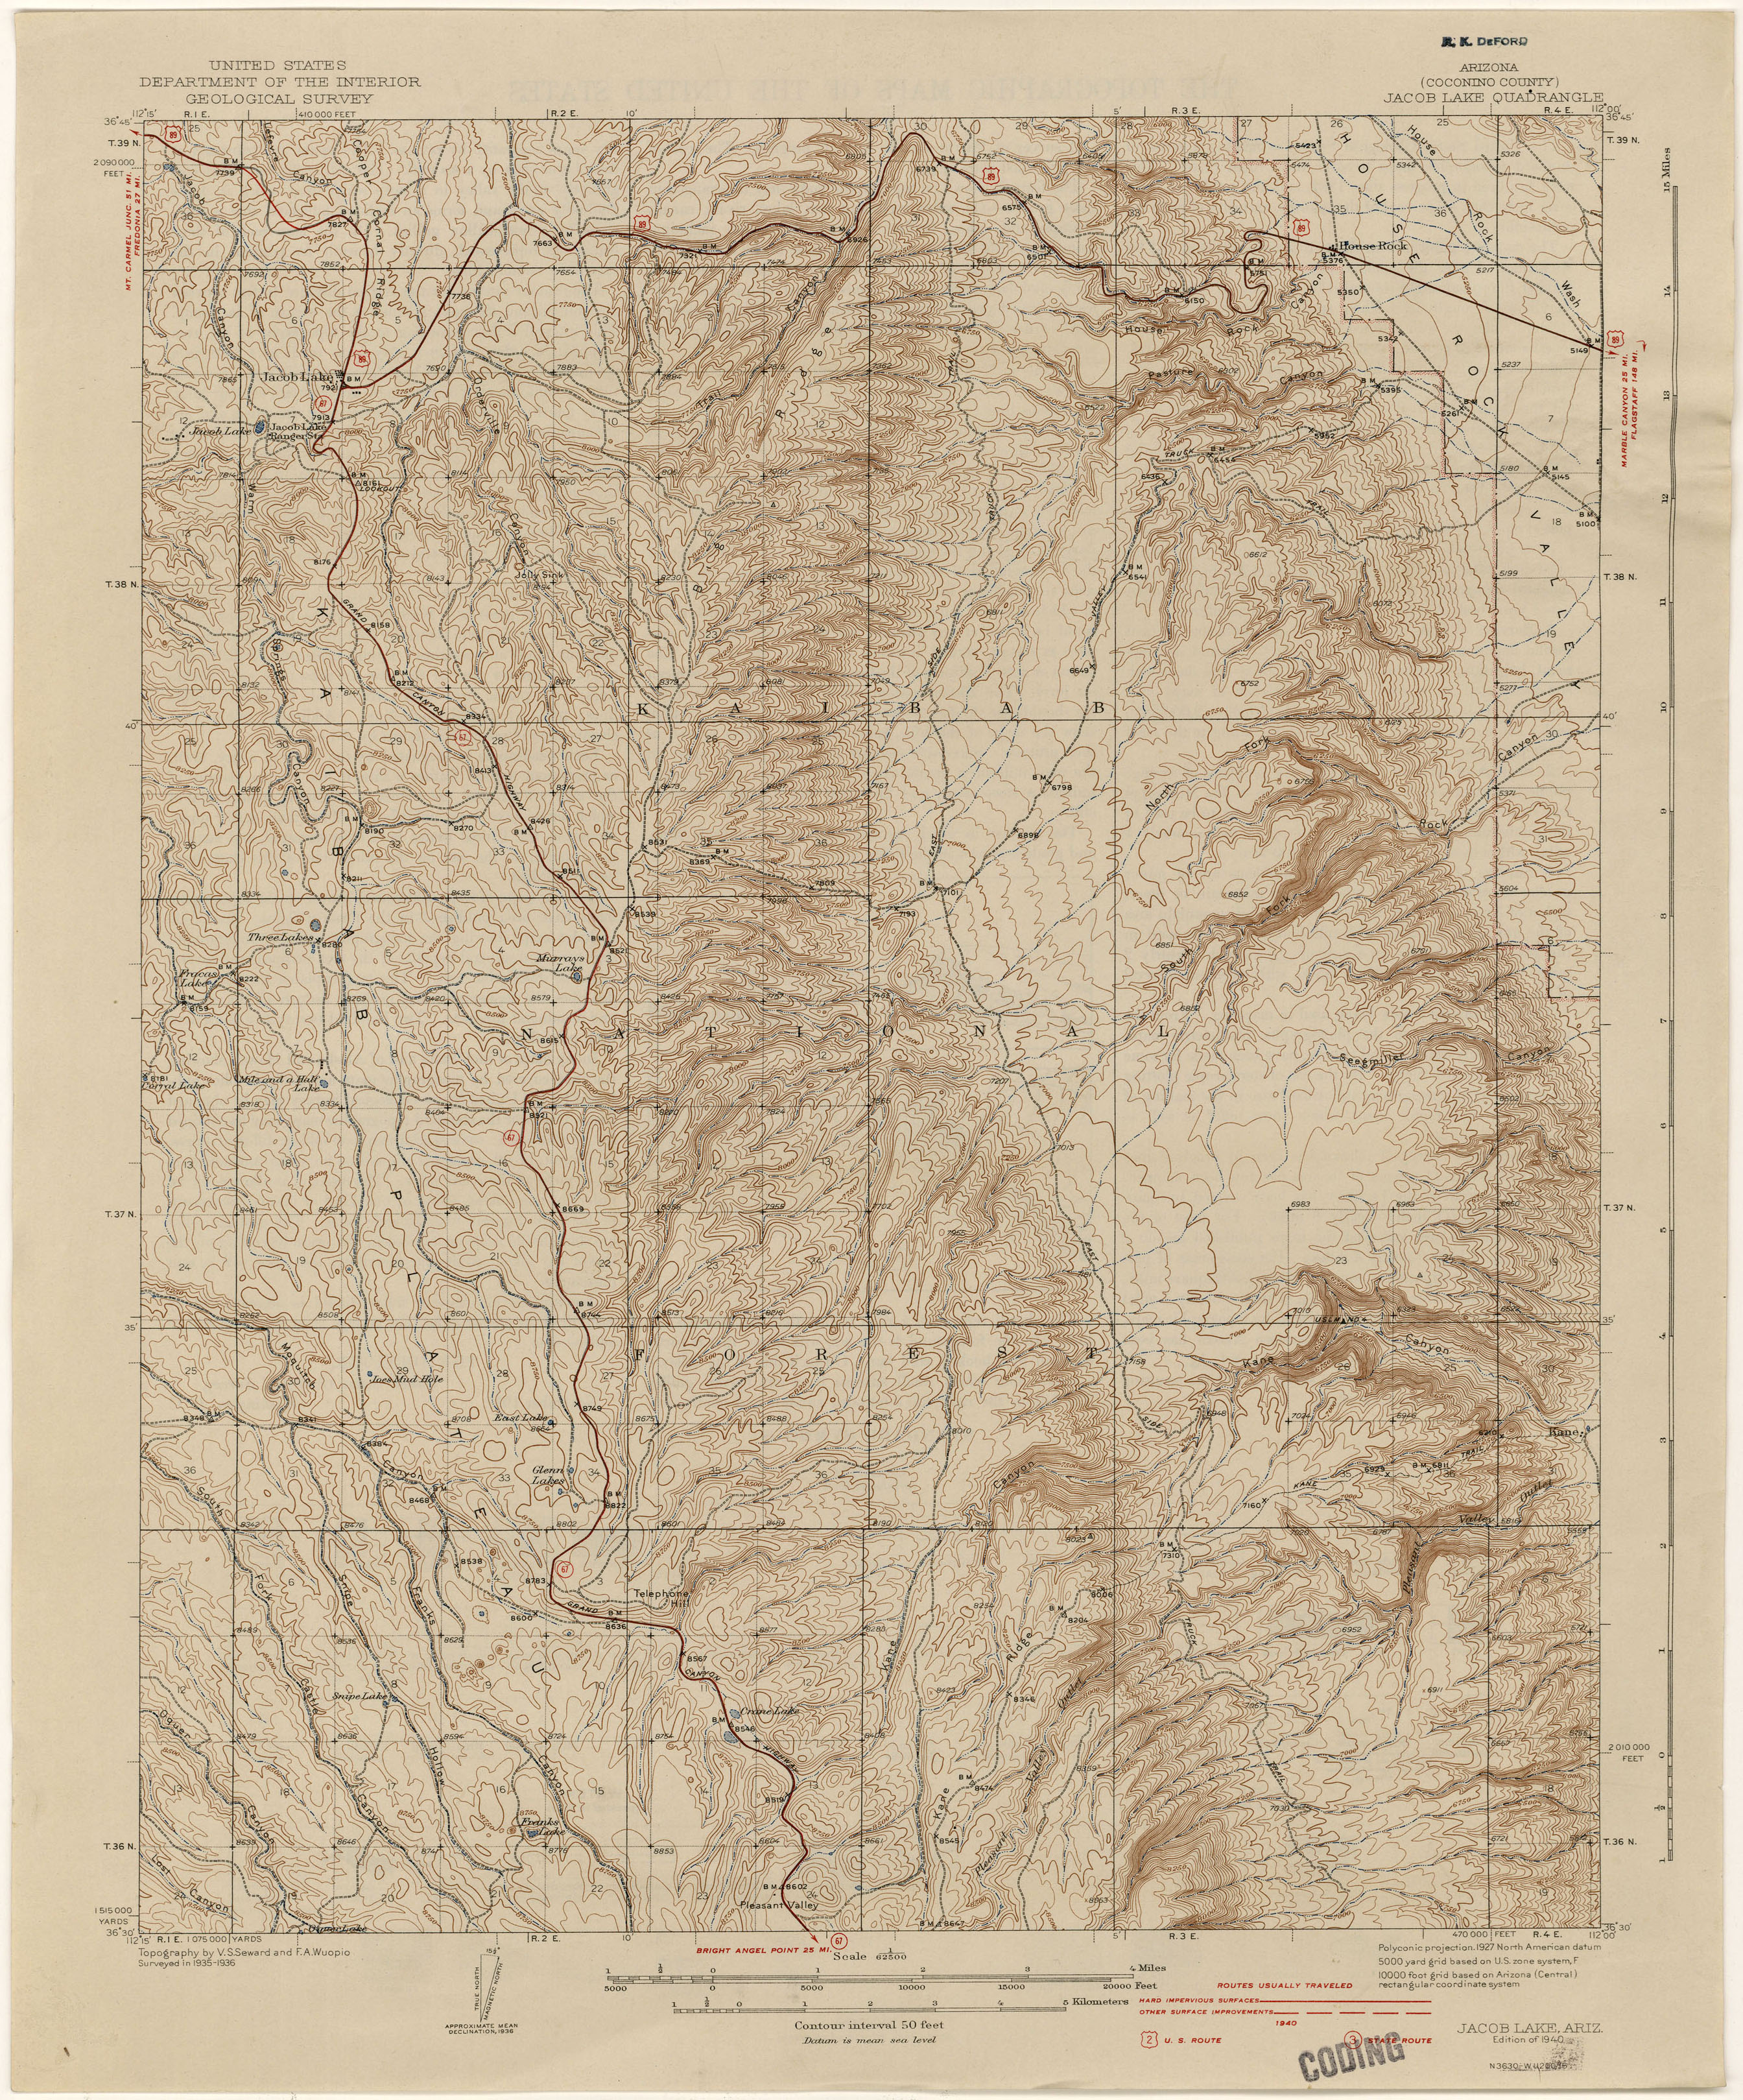 Arizona Topographic Map Arizona Historical Topographic Maps   Perry Castañeda Map